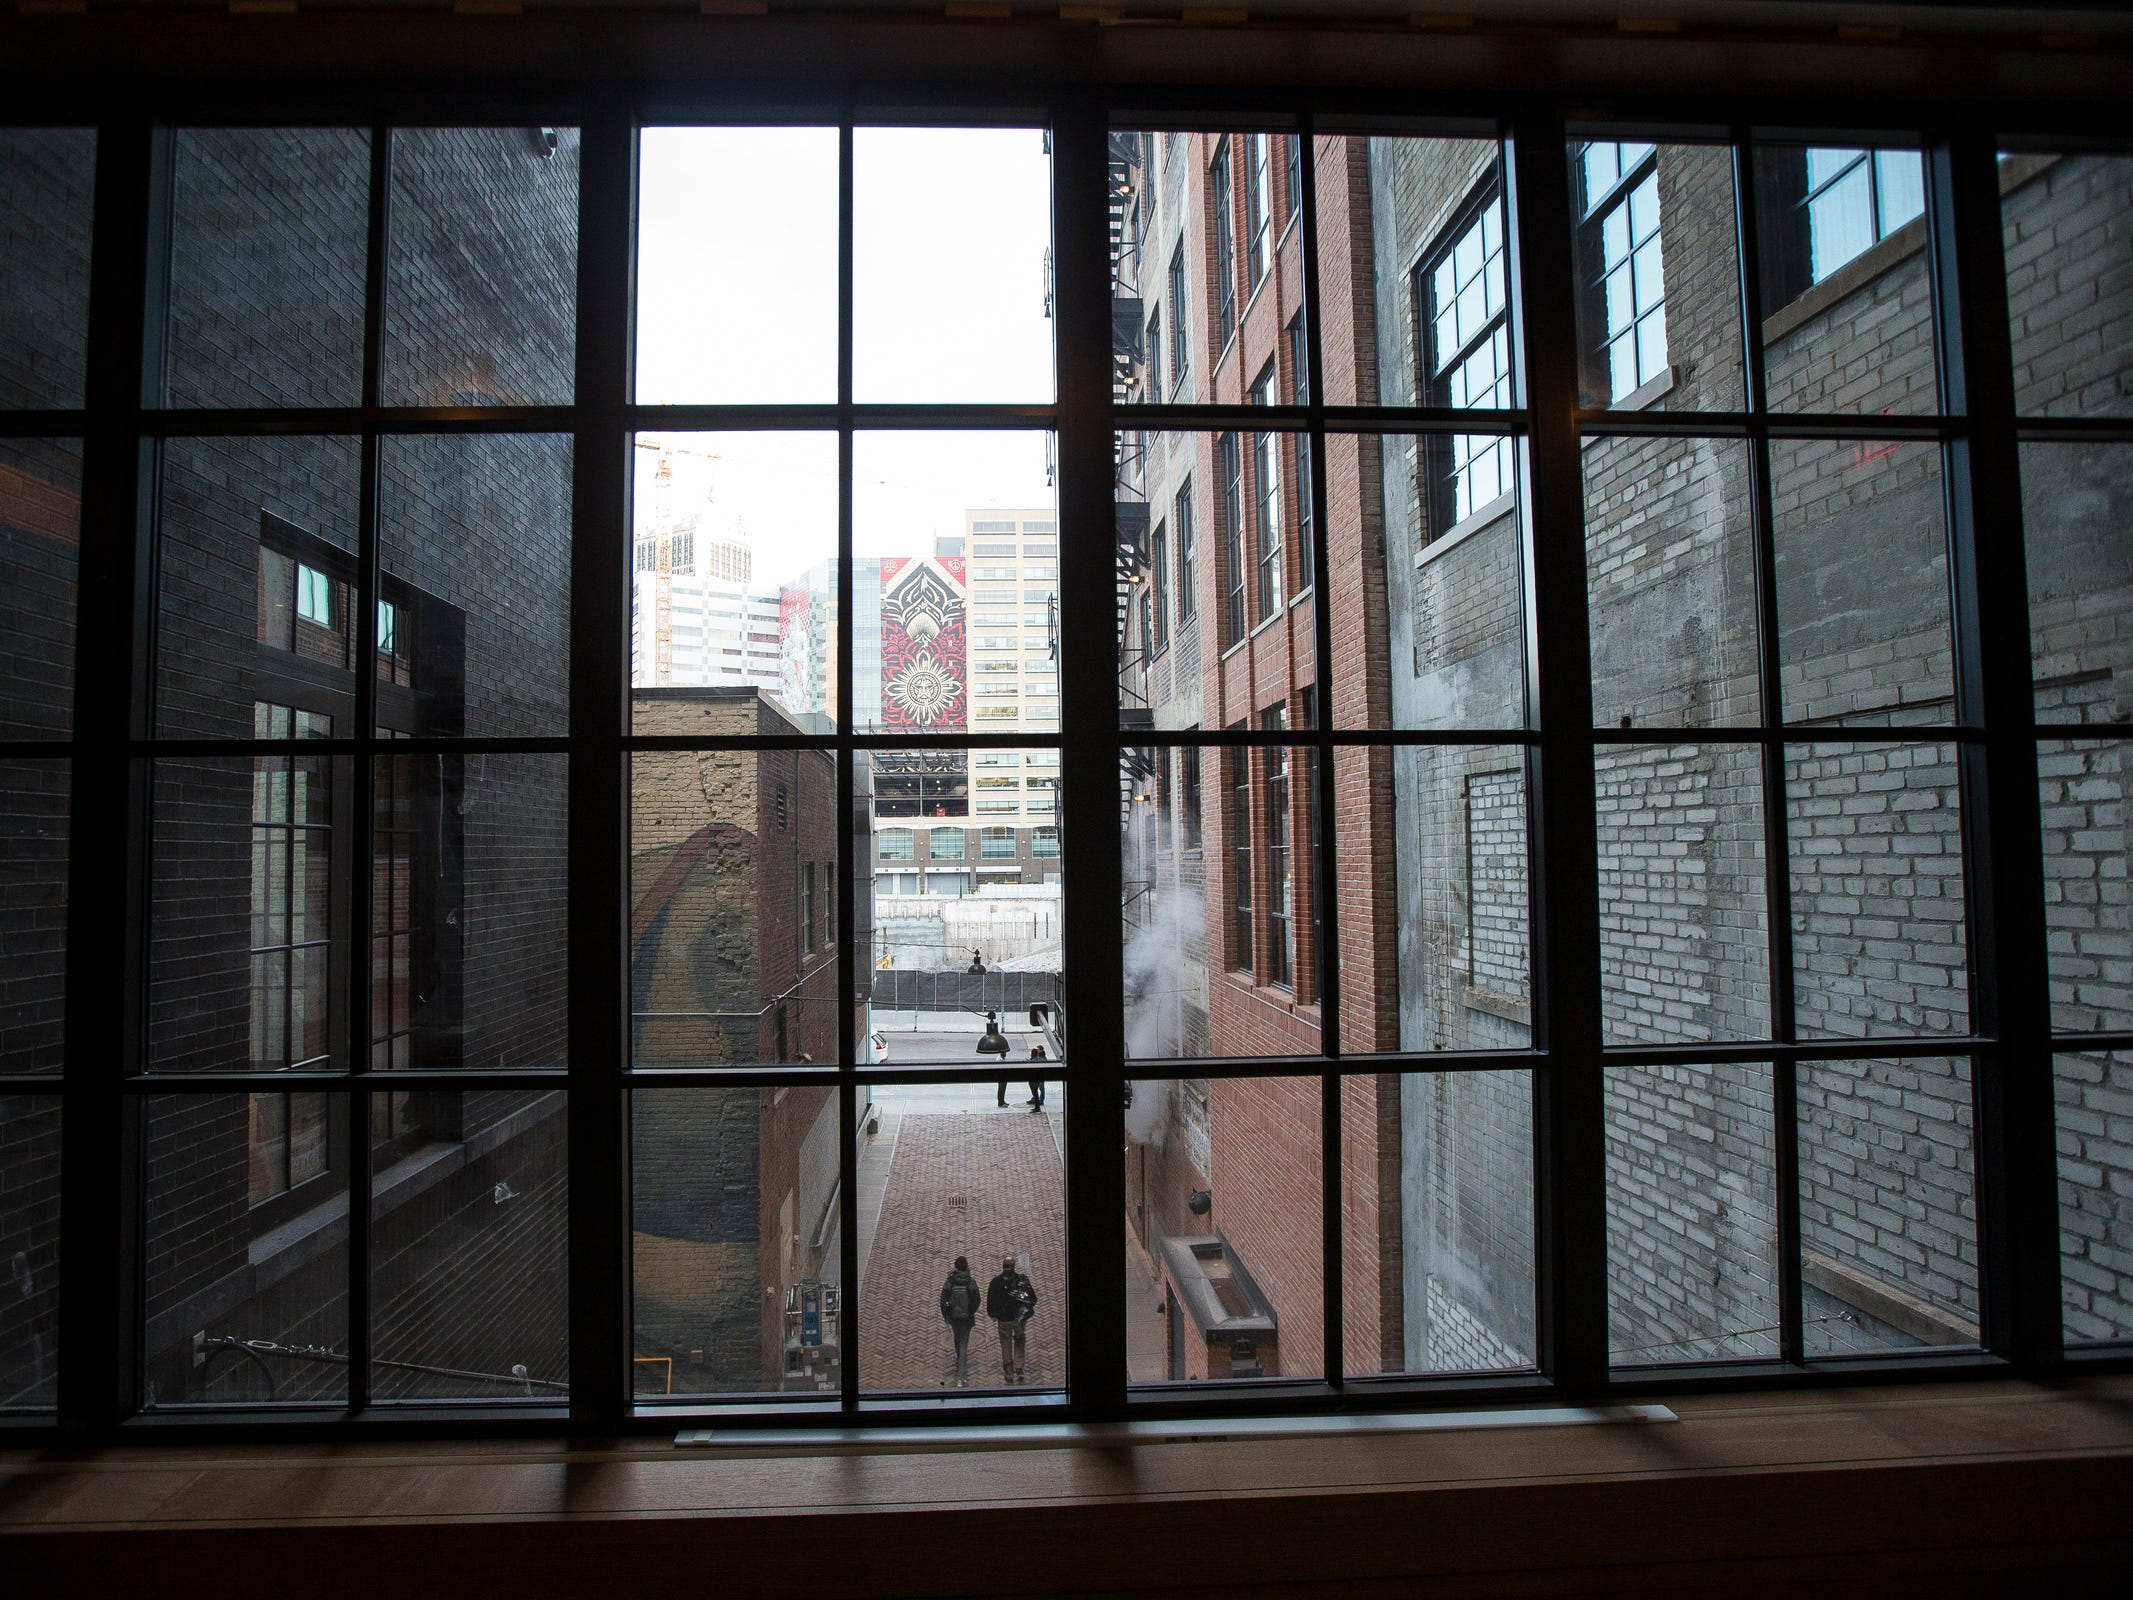 Overseeing Parker's Alley fromShinola Hotel in downtown Detroit, Dec. 18, 2018.